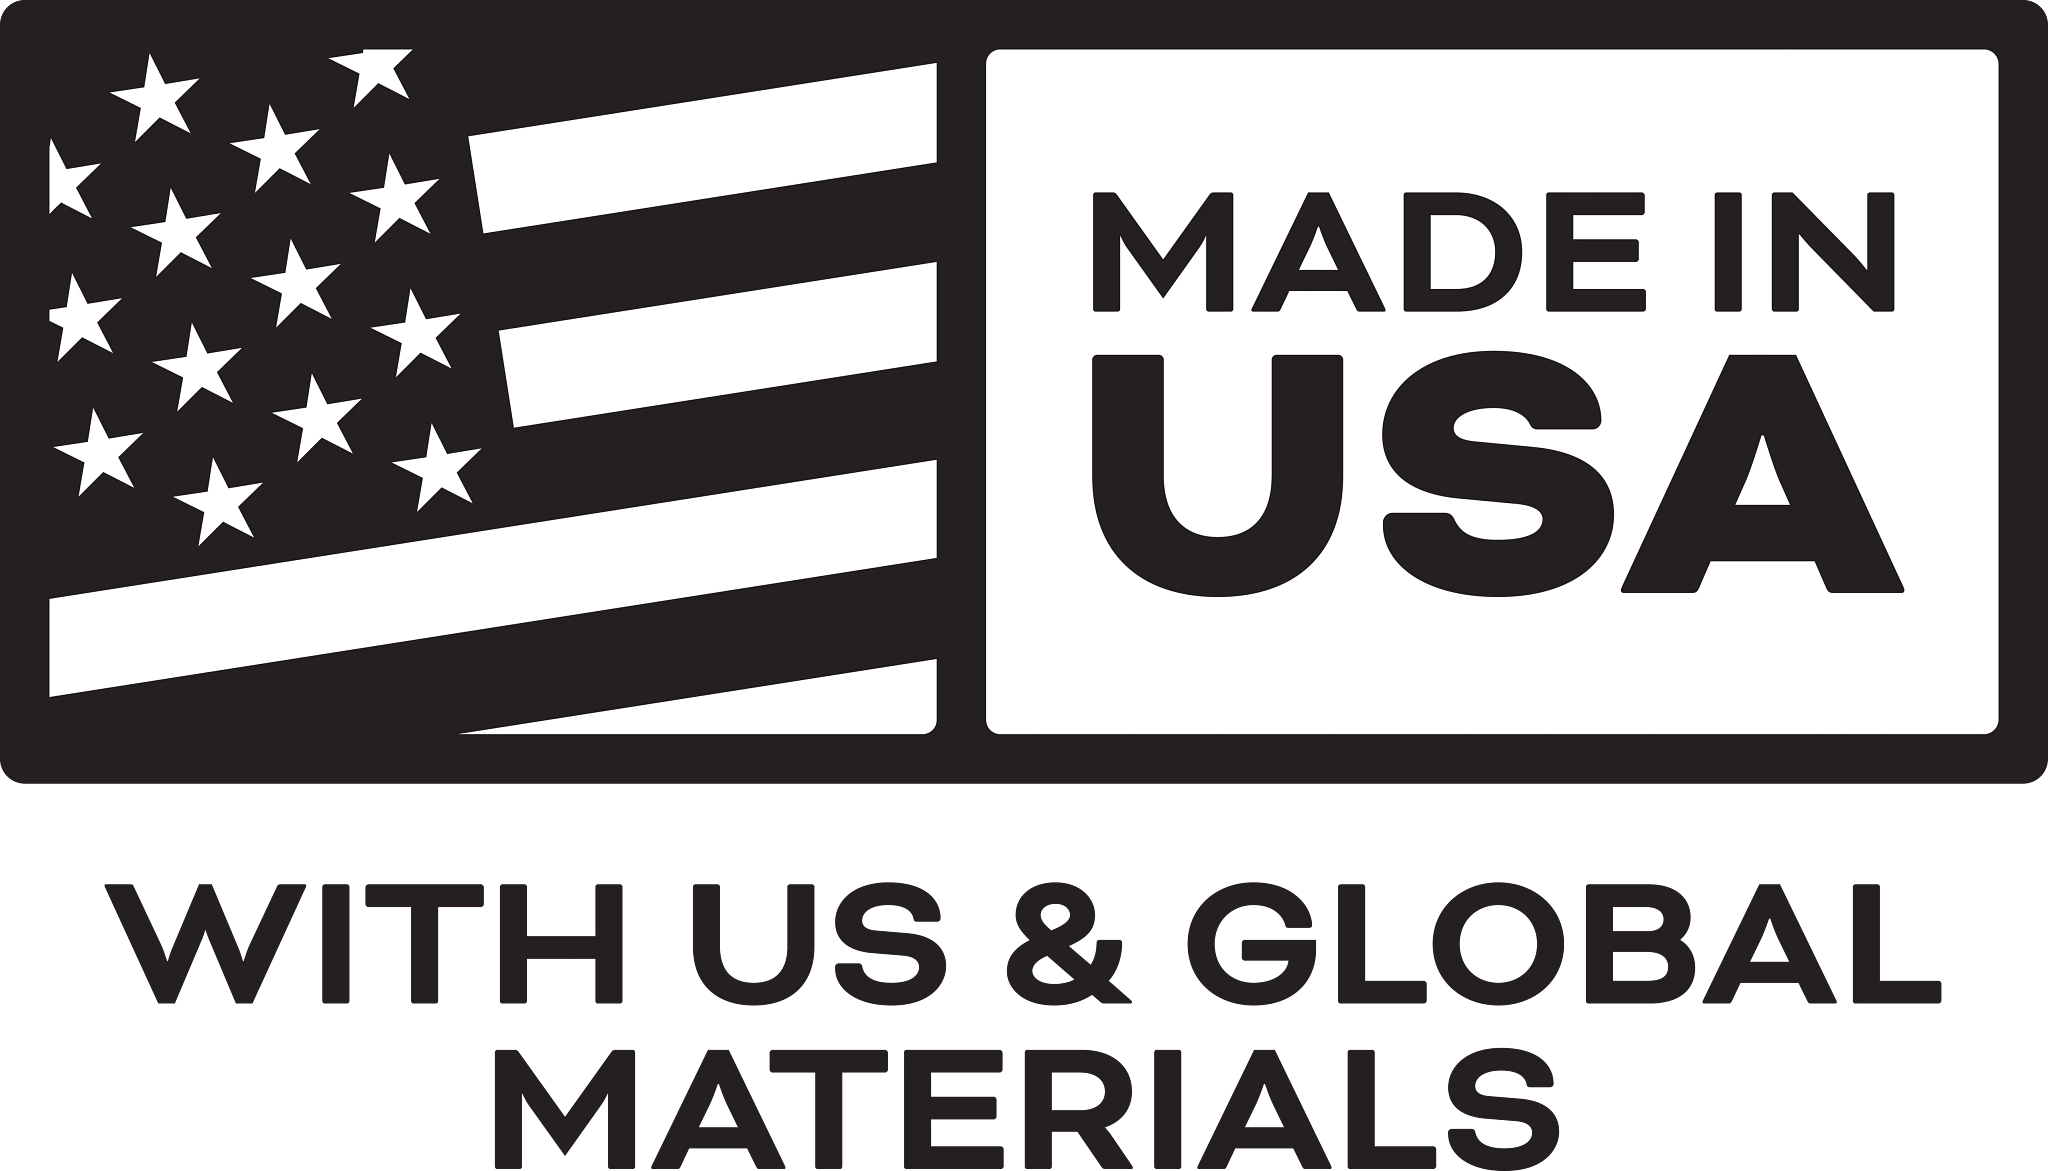 Made in the USA with U.S. & global materials